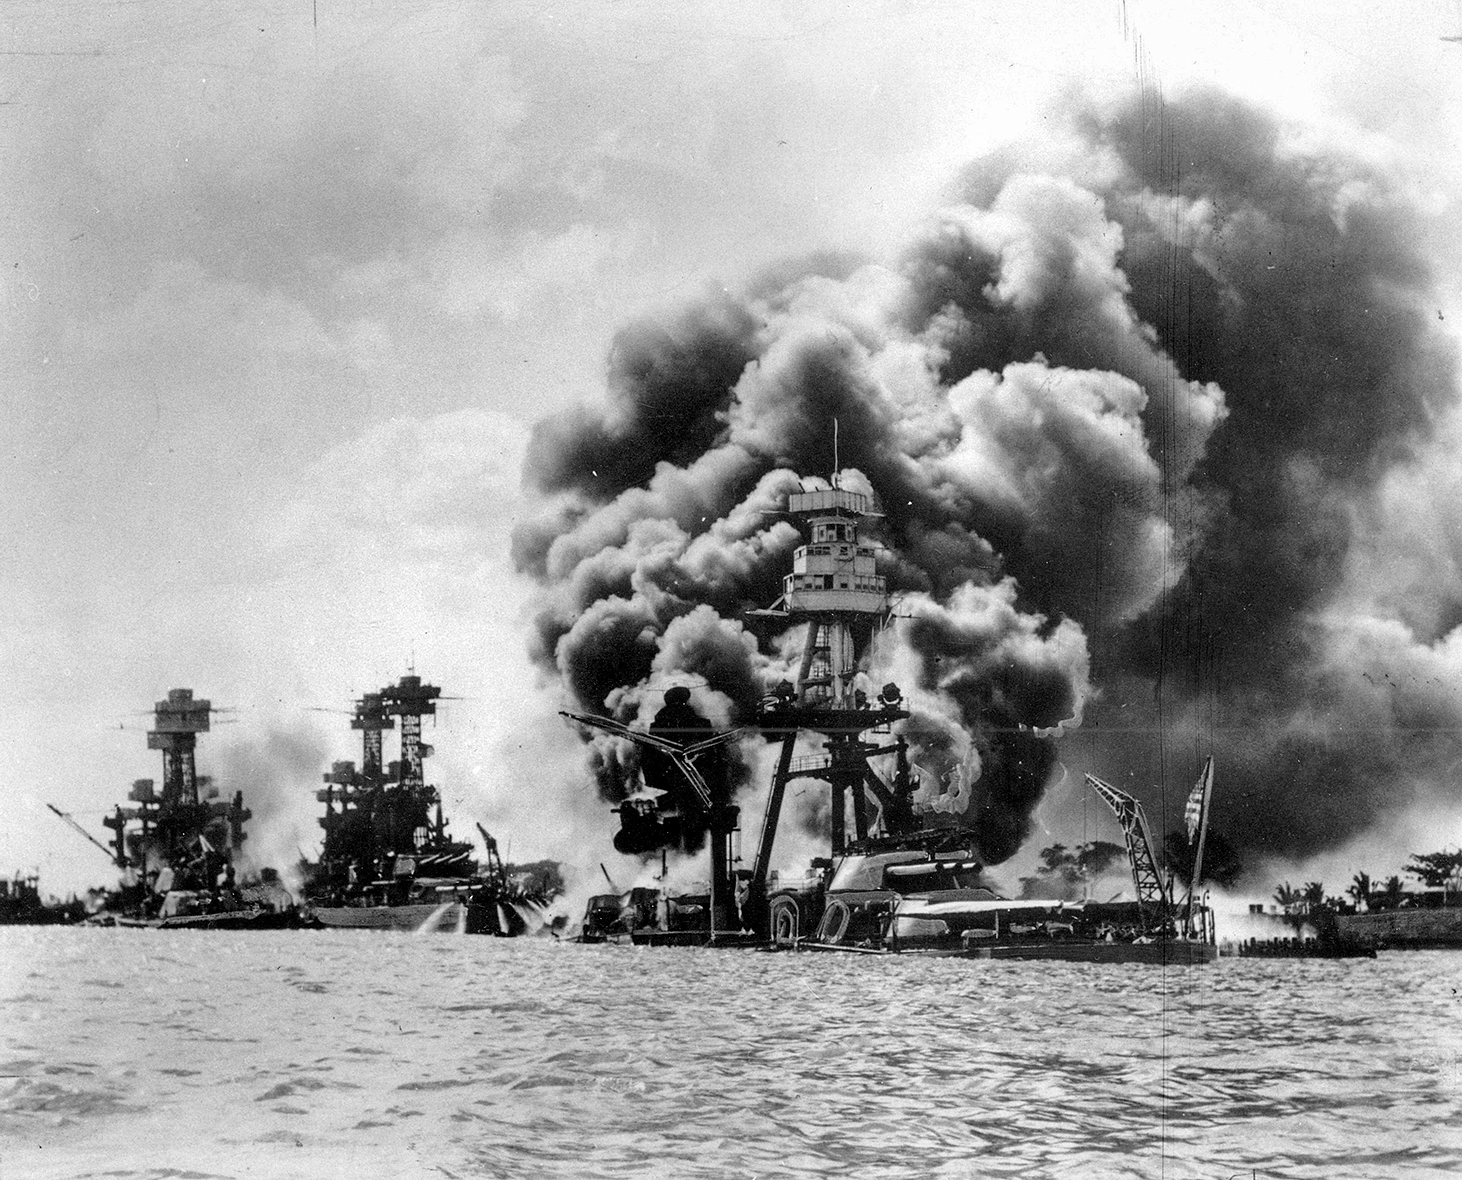 essay on pearl harbor Visit our blog to check out pearl harbor essay sample order history essays of any difficulty level from our writers.